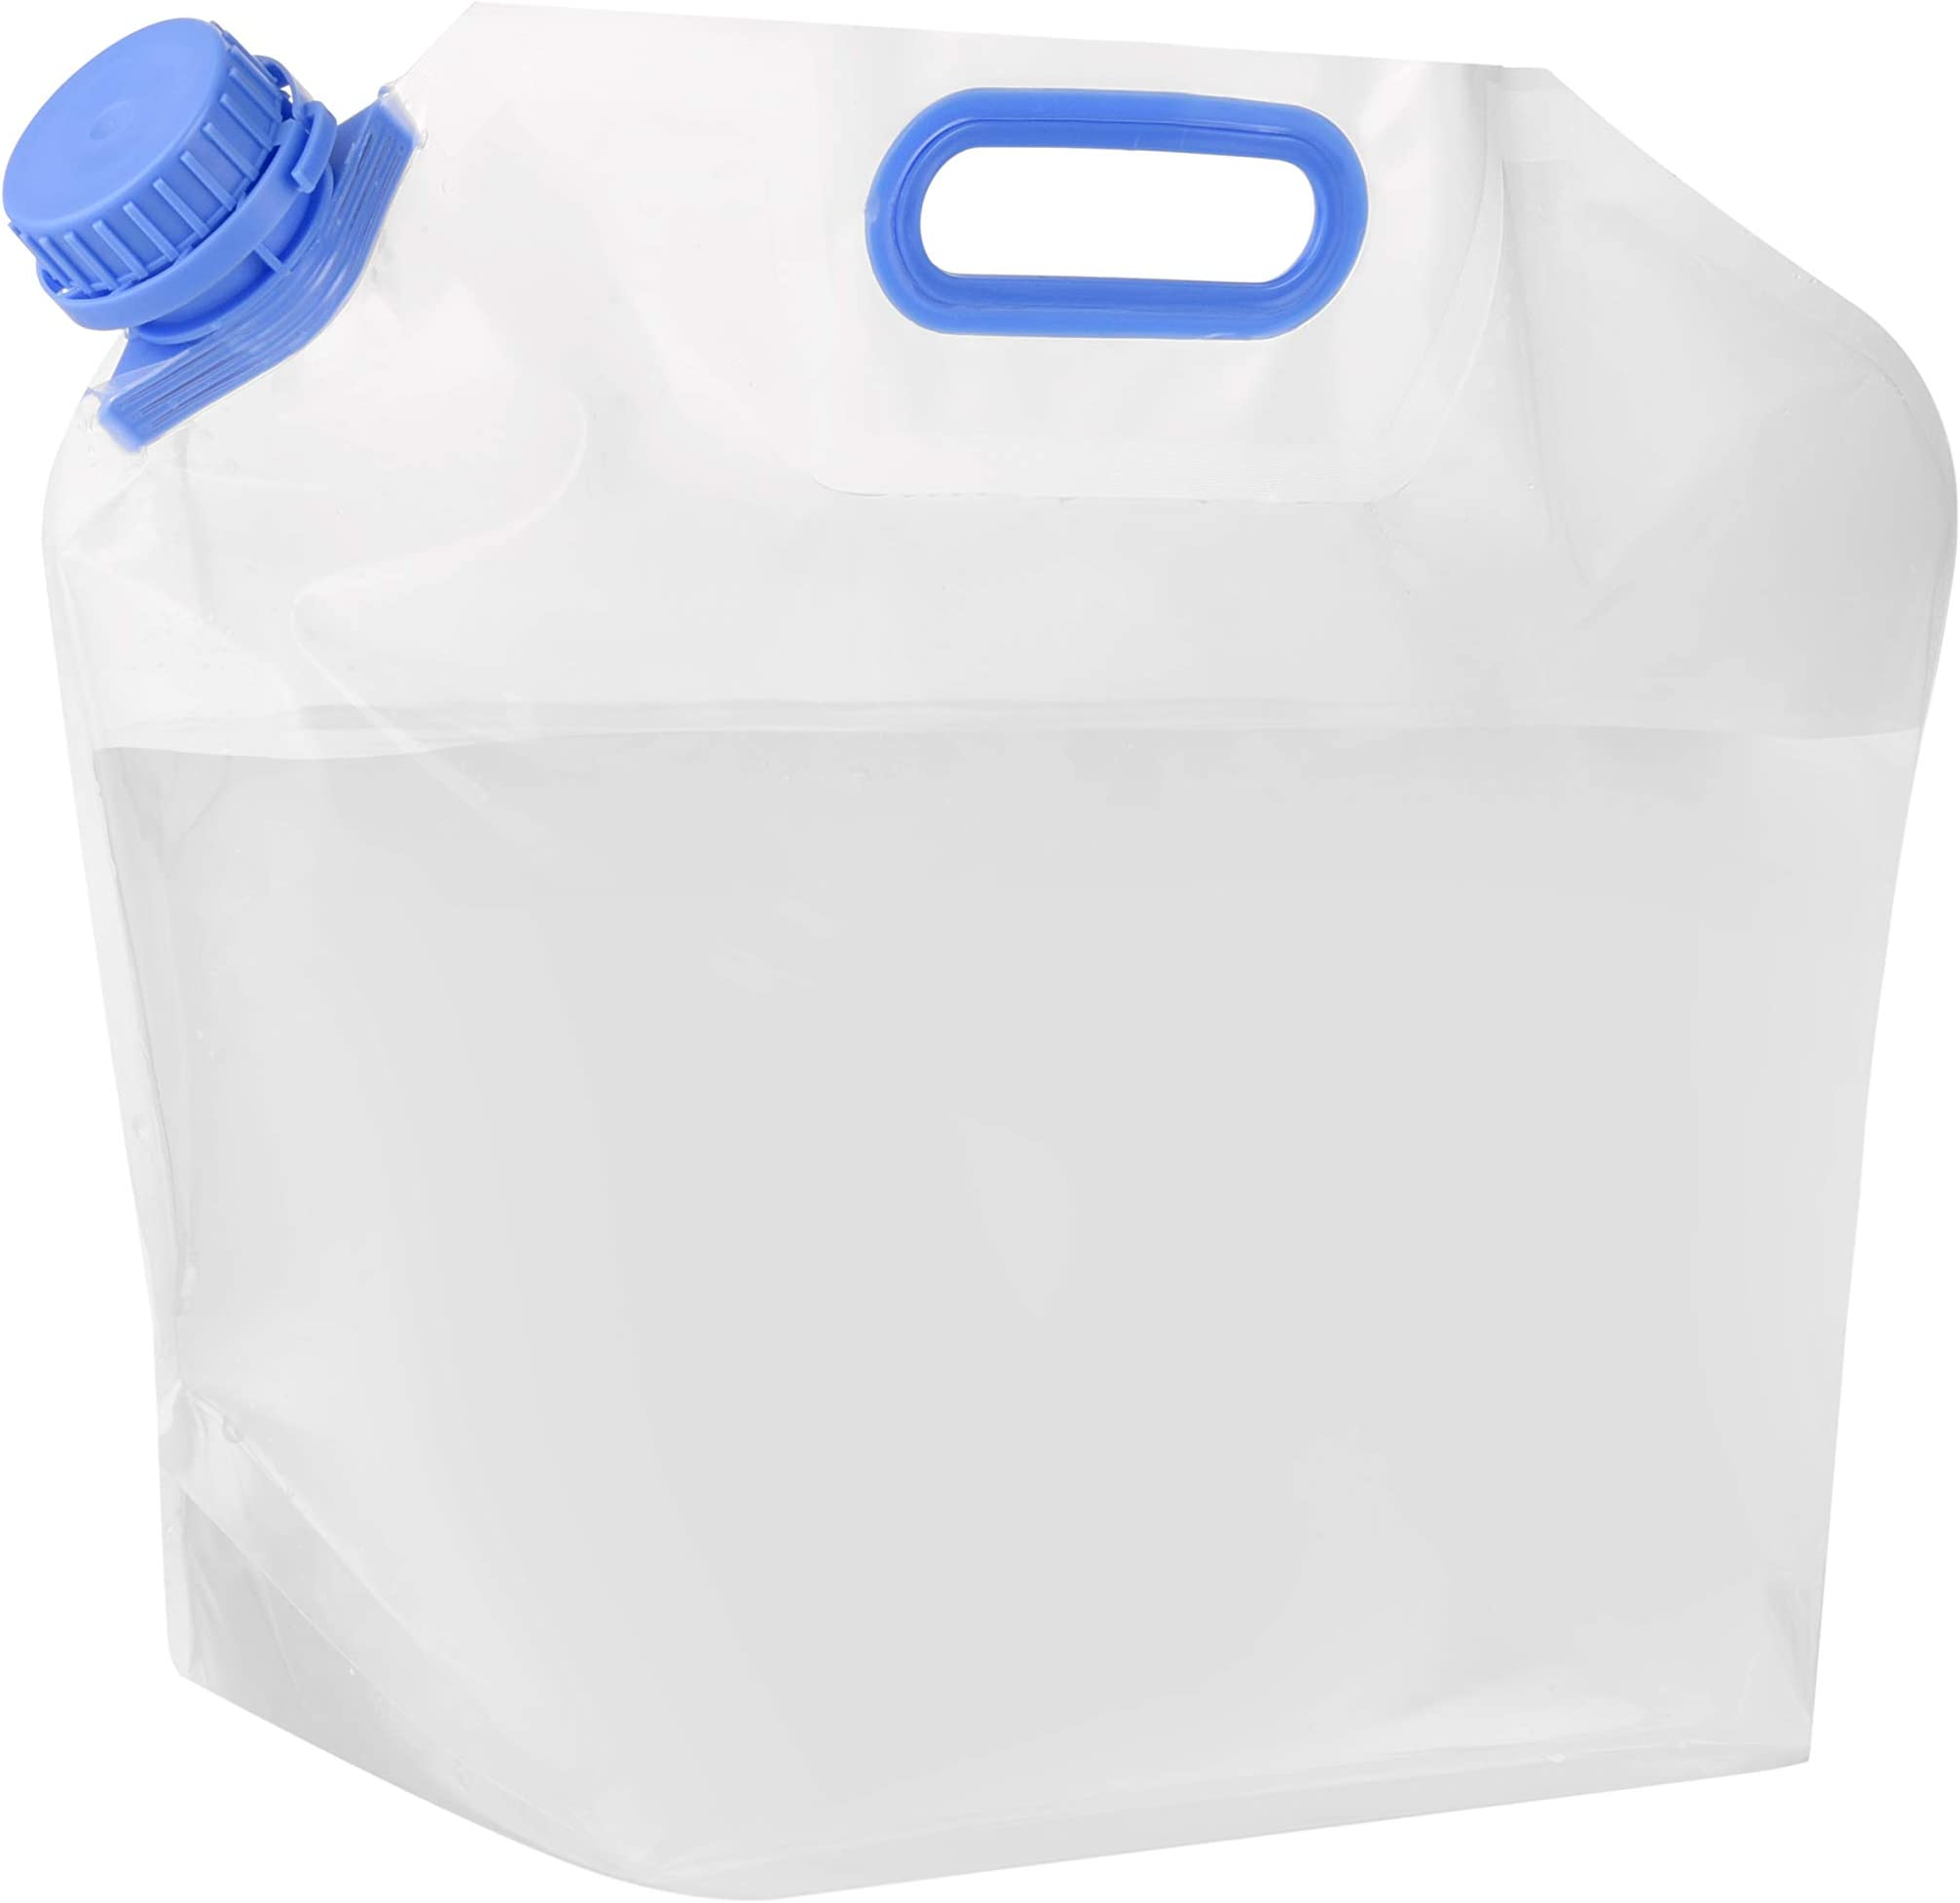 4xBPA Free Collapsible Water Container 4 Gallon Portable Water Storage Container